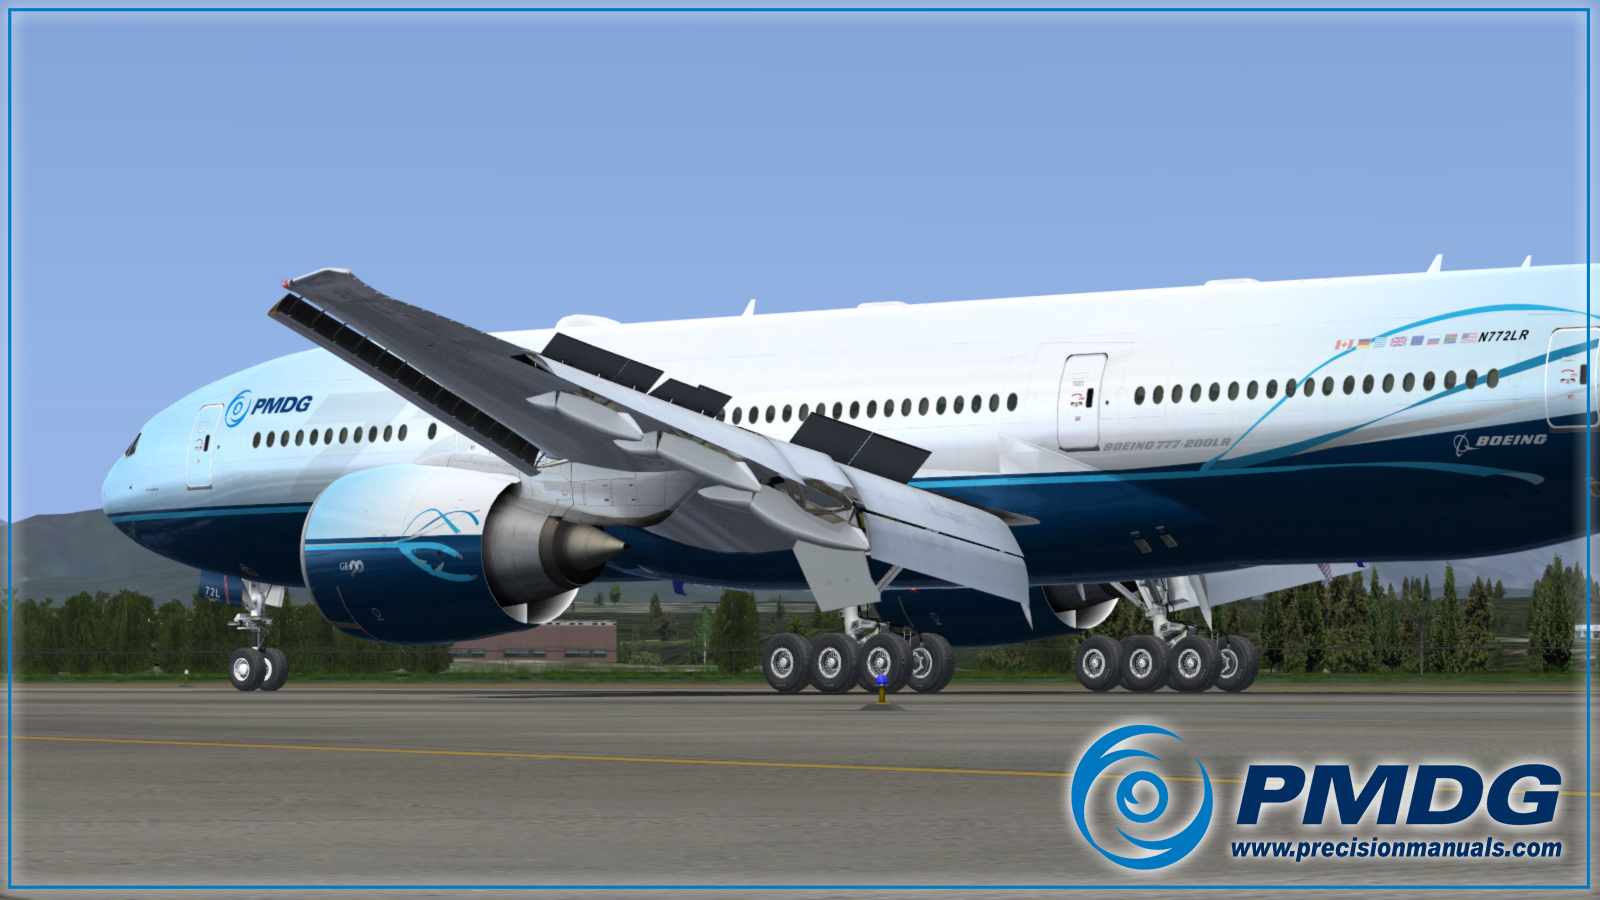 PMDG 777 Shots That Will Make a Grown Man Cry - Angle of Attack